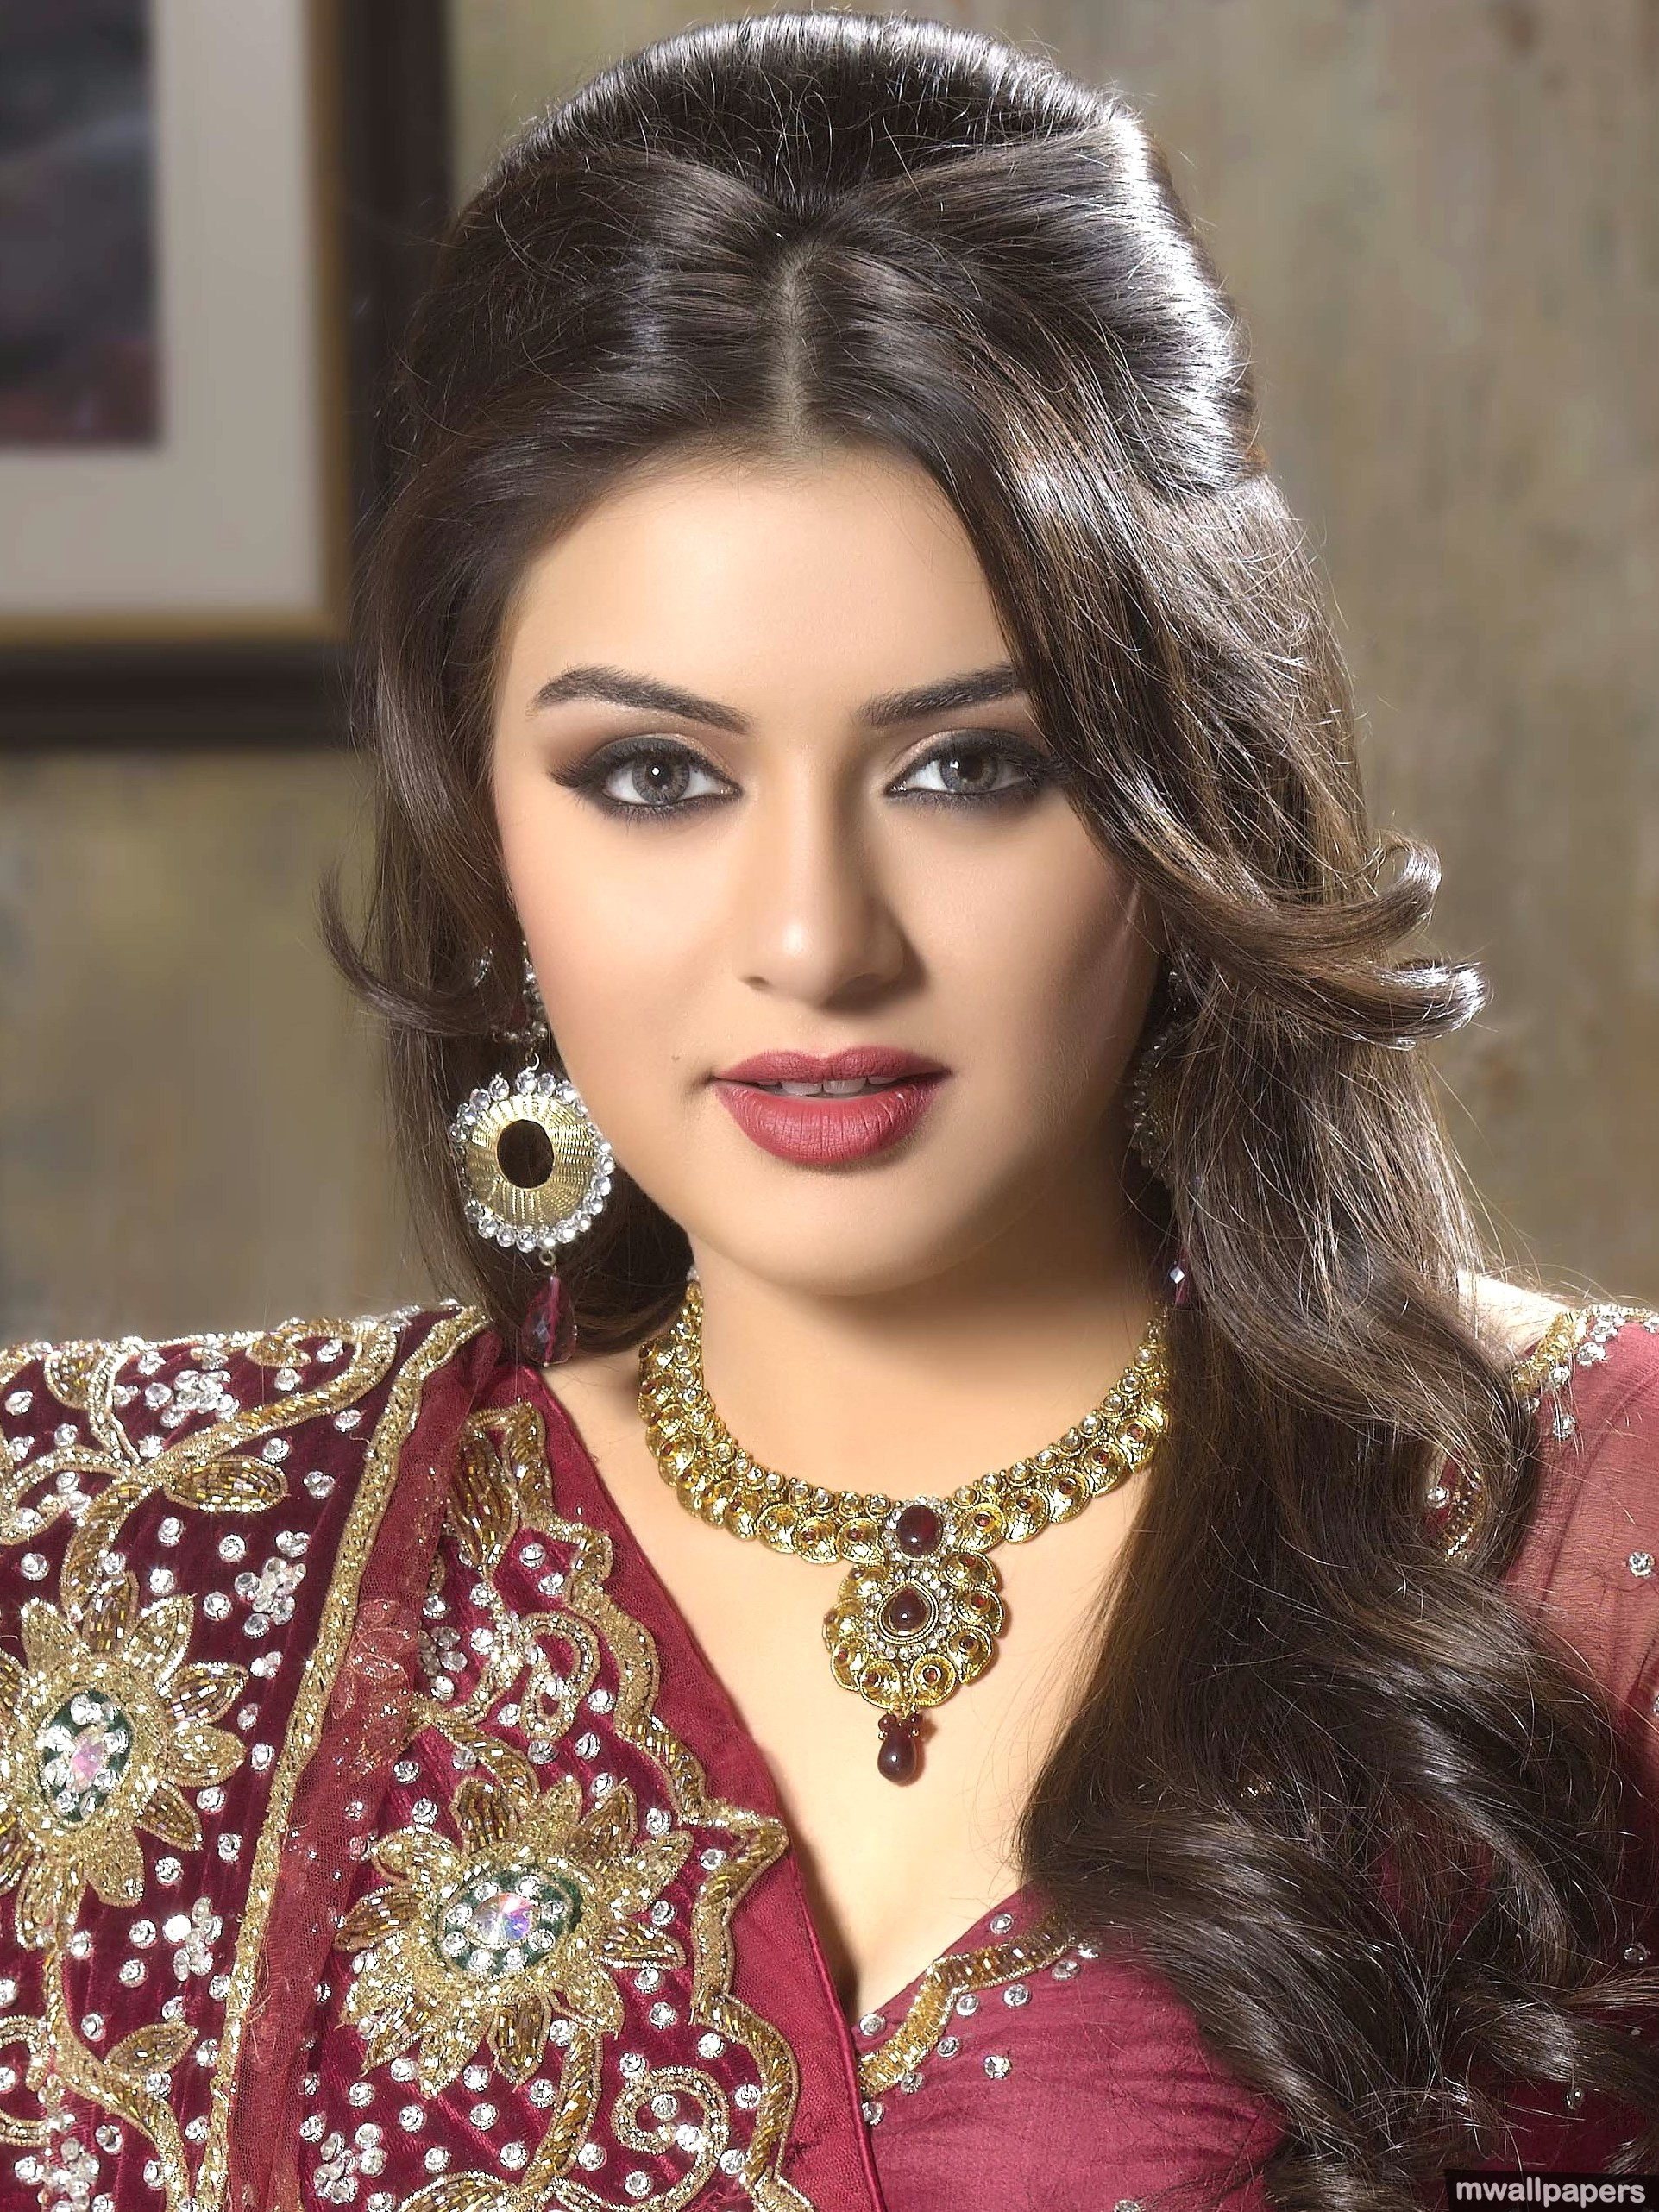 300 Hansika Motwani 2019 Hd Photoswallpapers Download  Android, Iphone